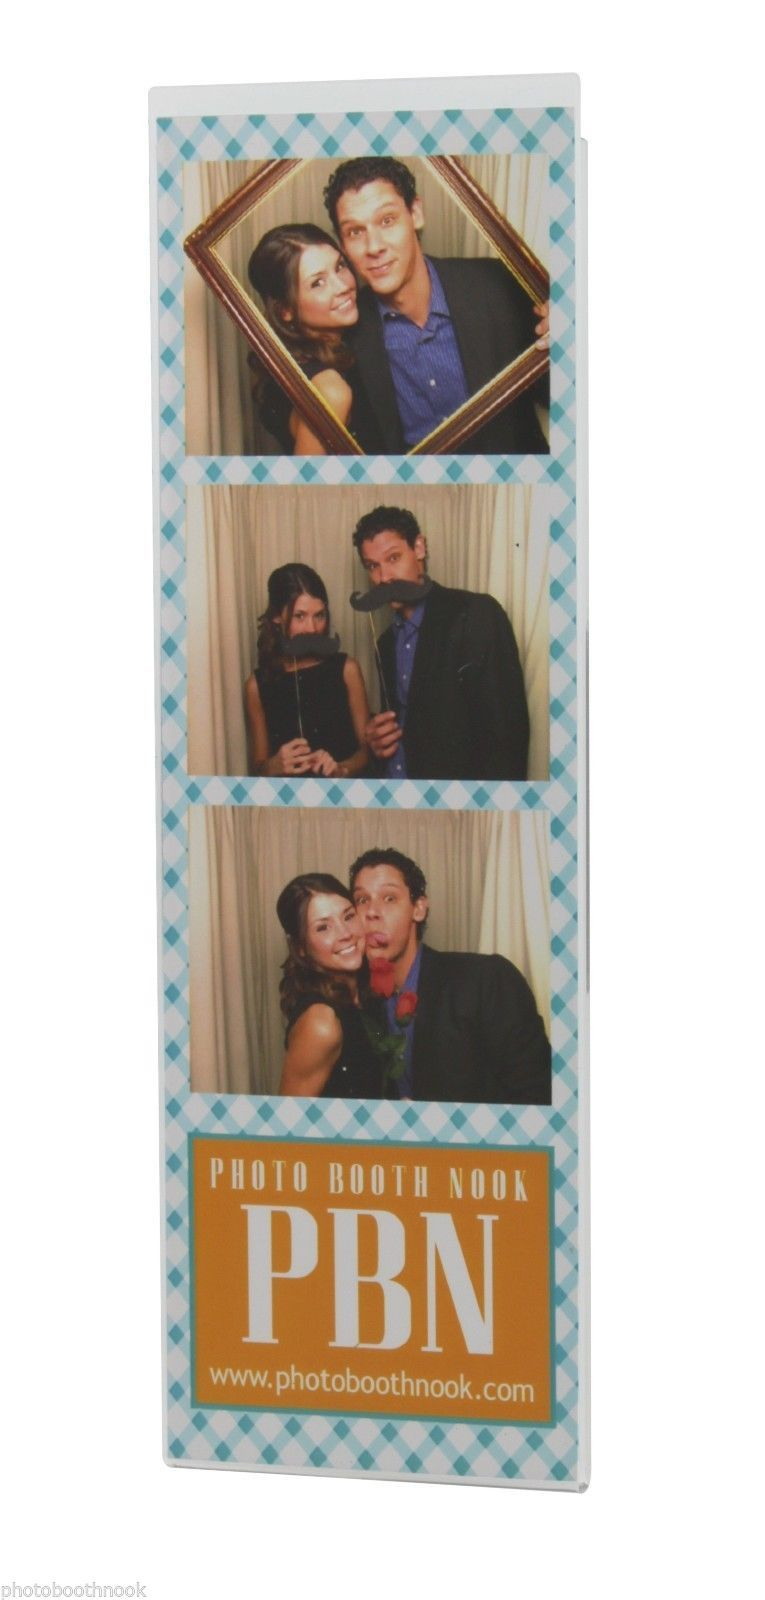 Acrylic photo booth frames 2x6 How to transfer photos from your Android device the